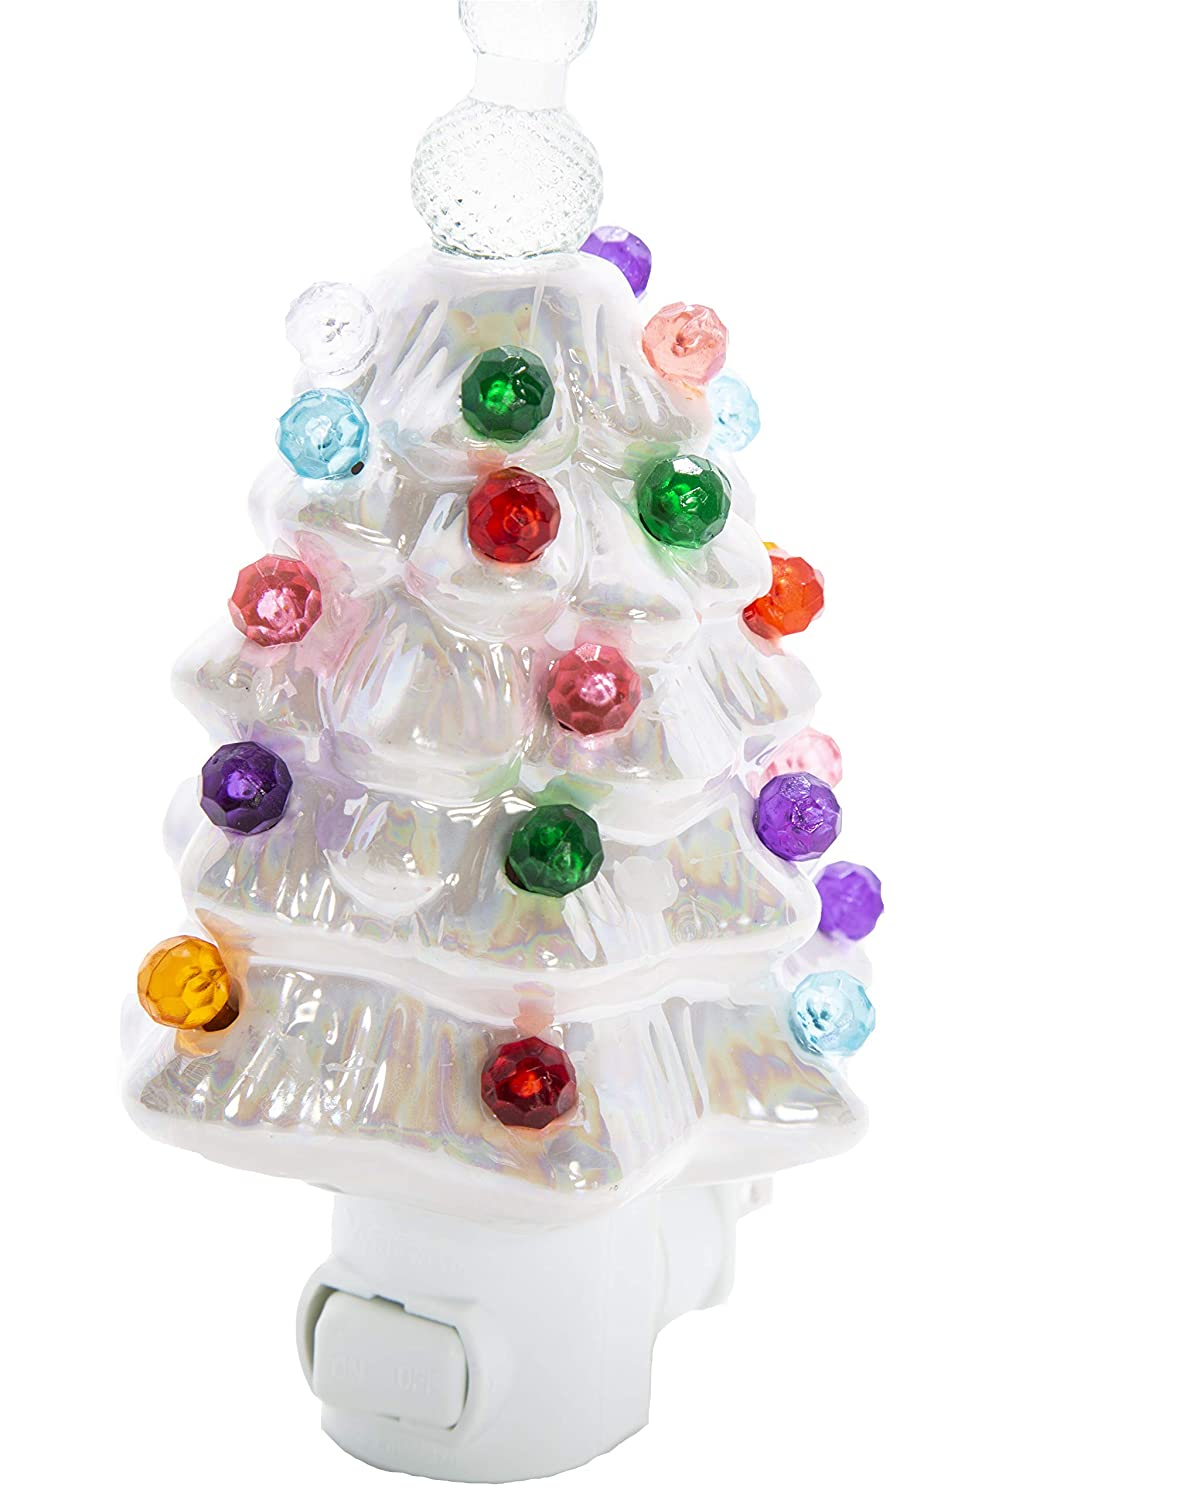 Relive White Pearlized Ceramic Christmas Tree Night Light